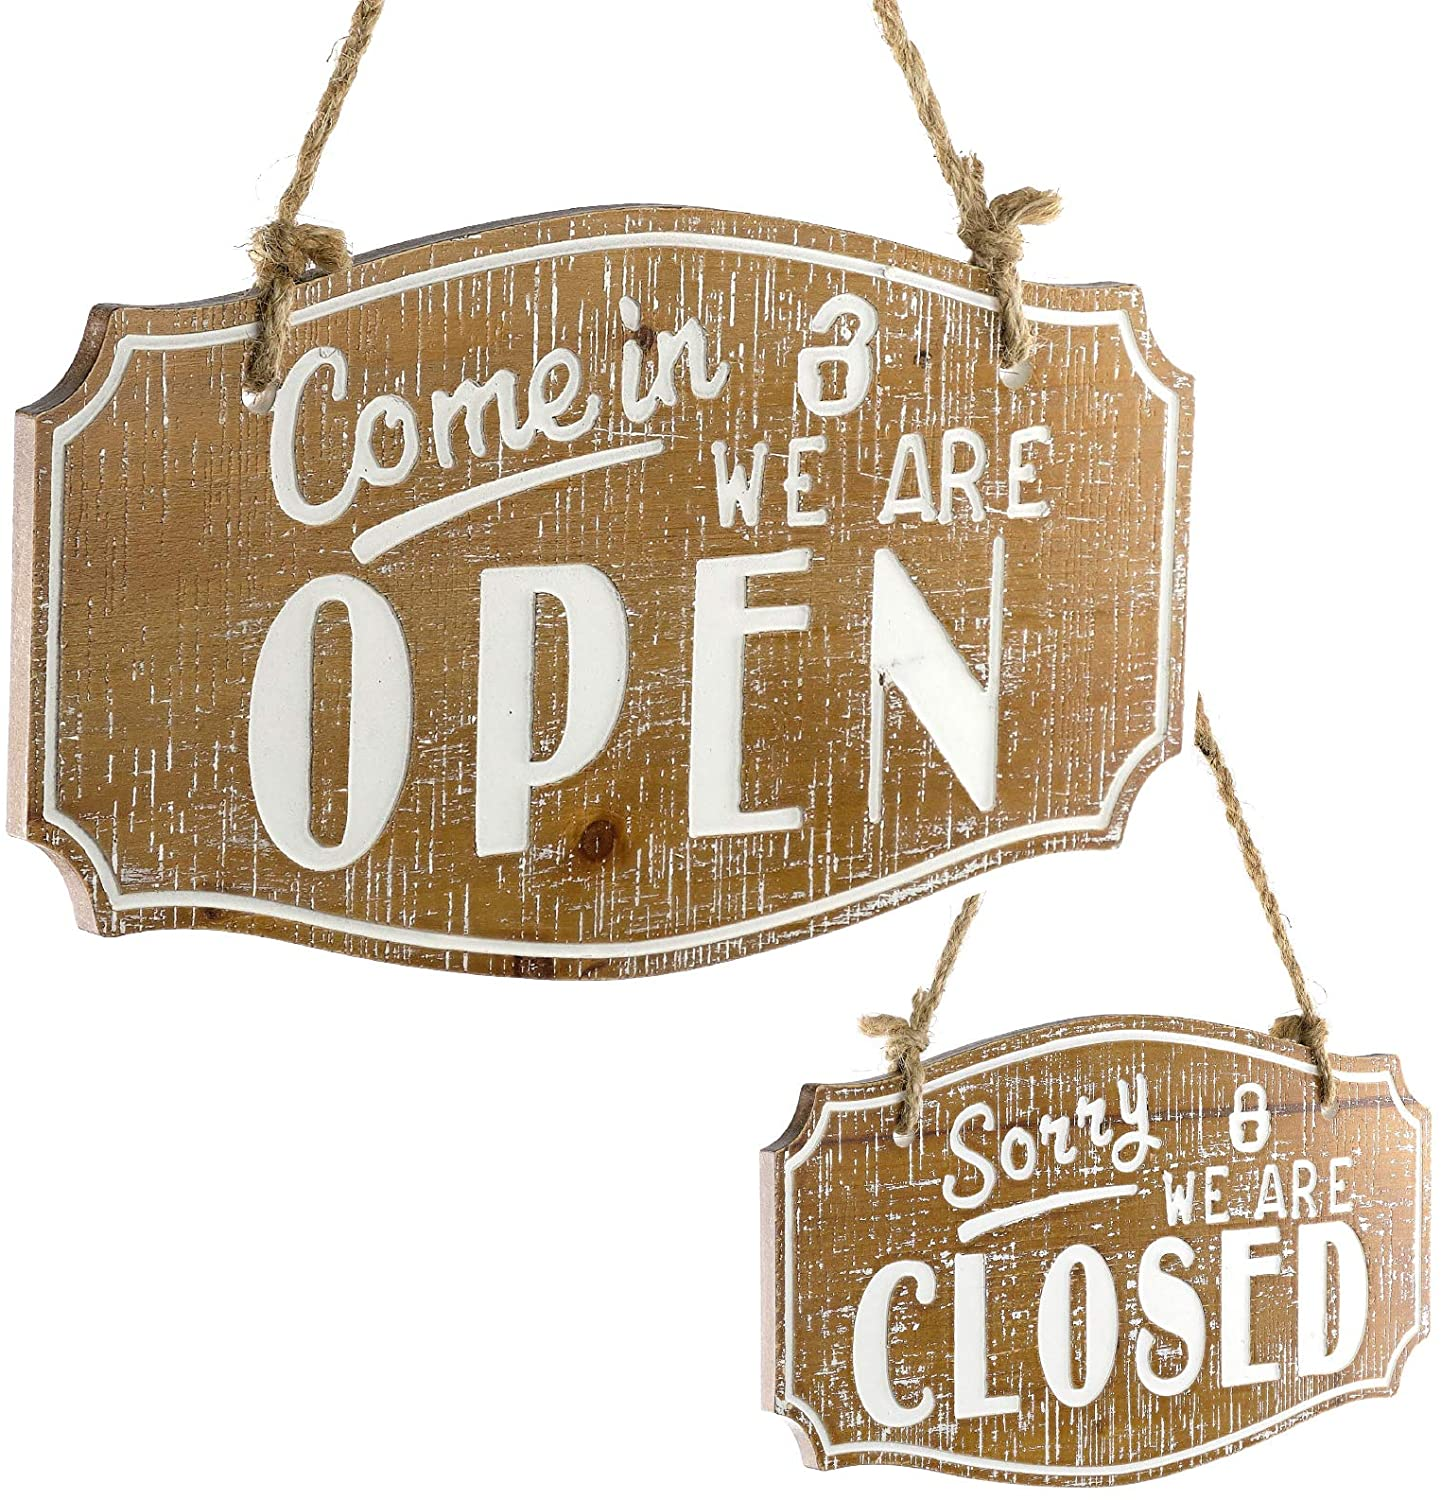 Come in We are Open/Sorry We are Close Sign Rustic Easy to Mount Informative Business Store Restaurant Bar Reversible Vintage Wooden Sign Decor 6 3/4 x 11 3/4 Inches (Brown)